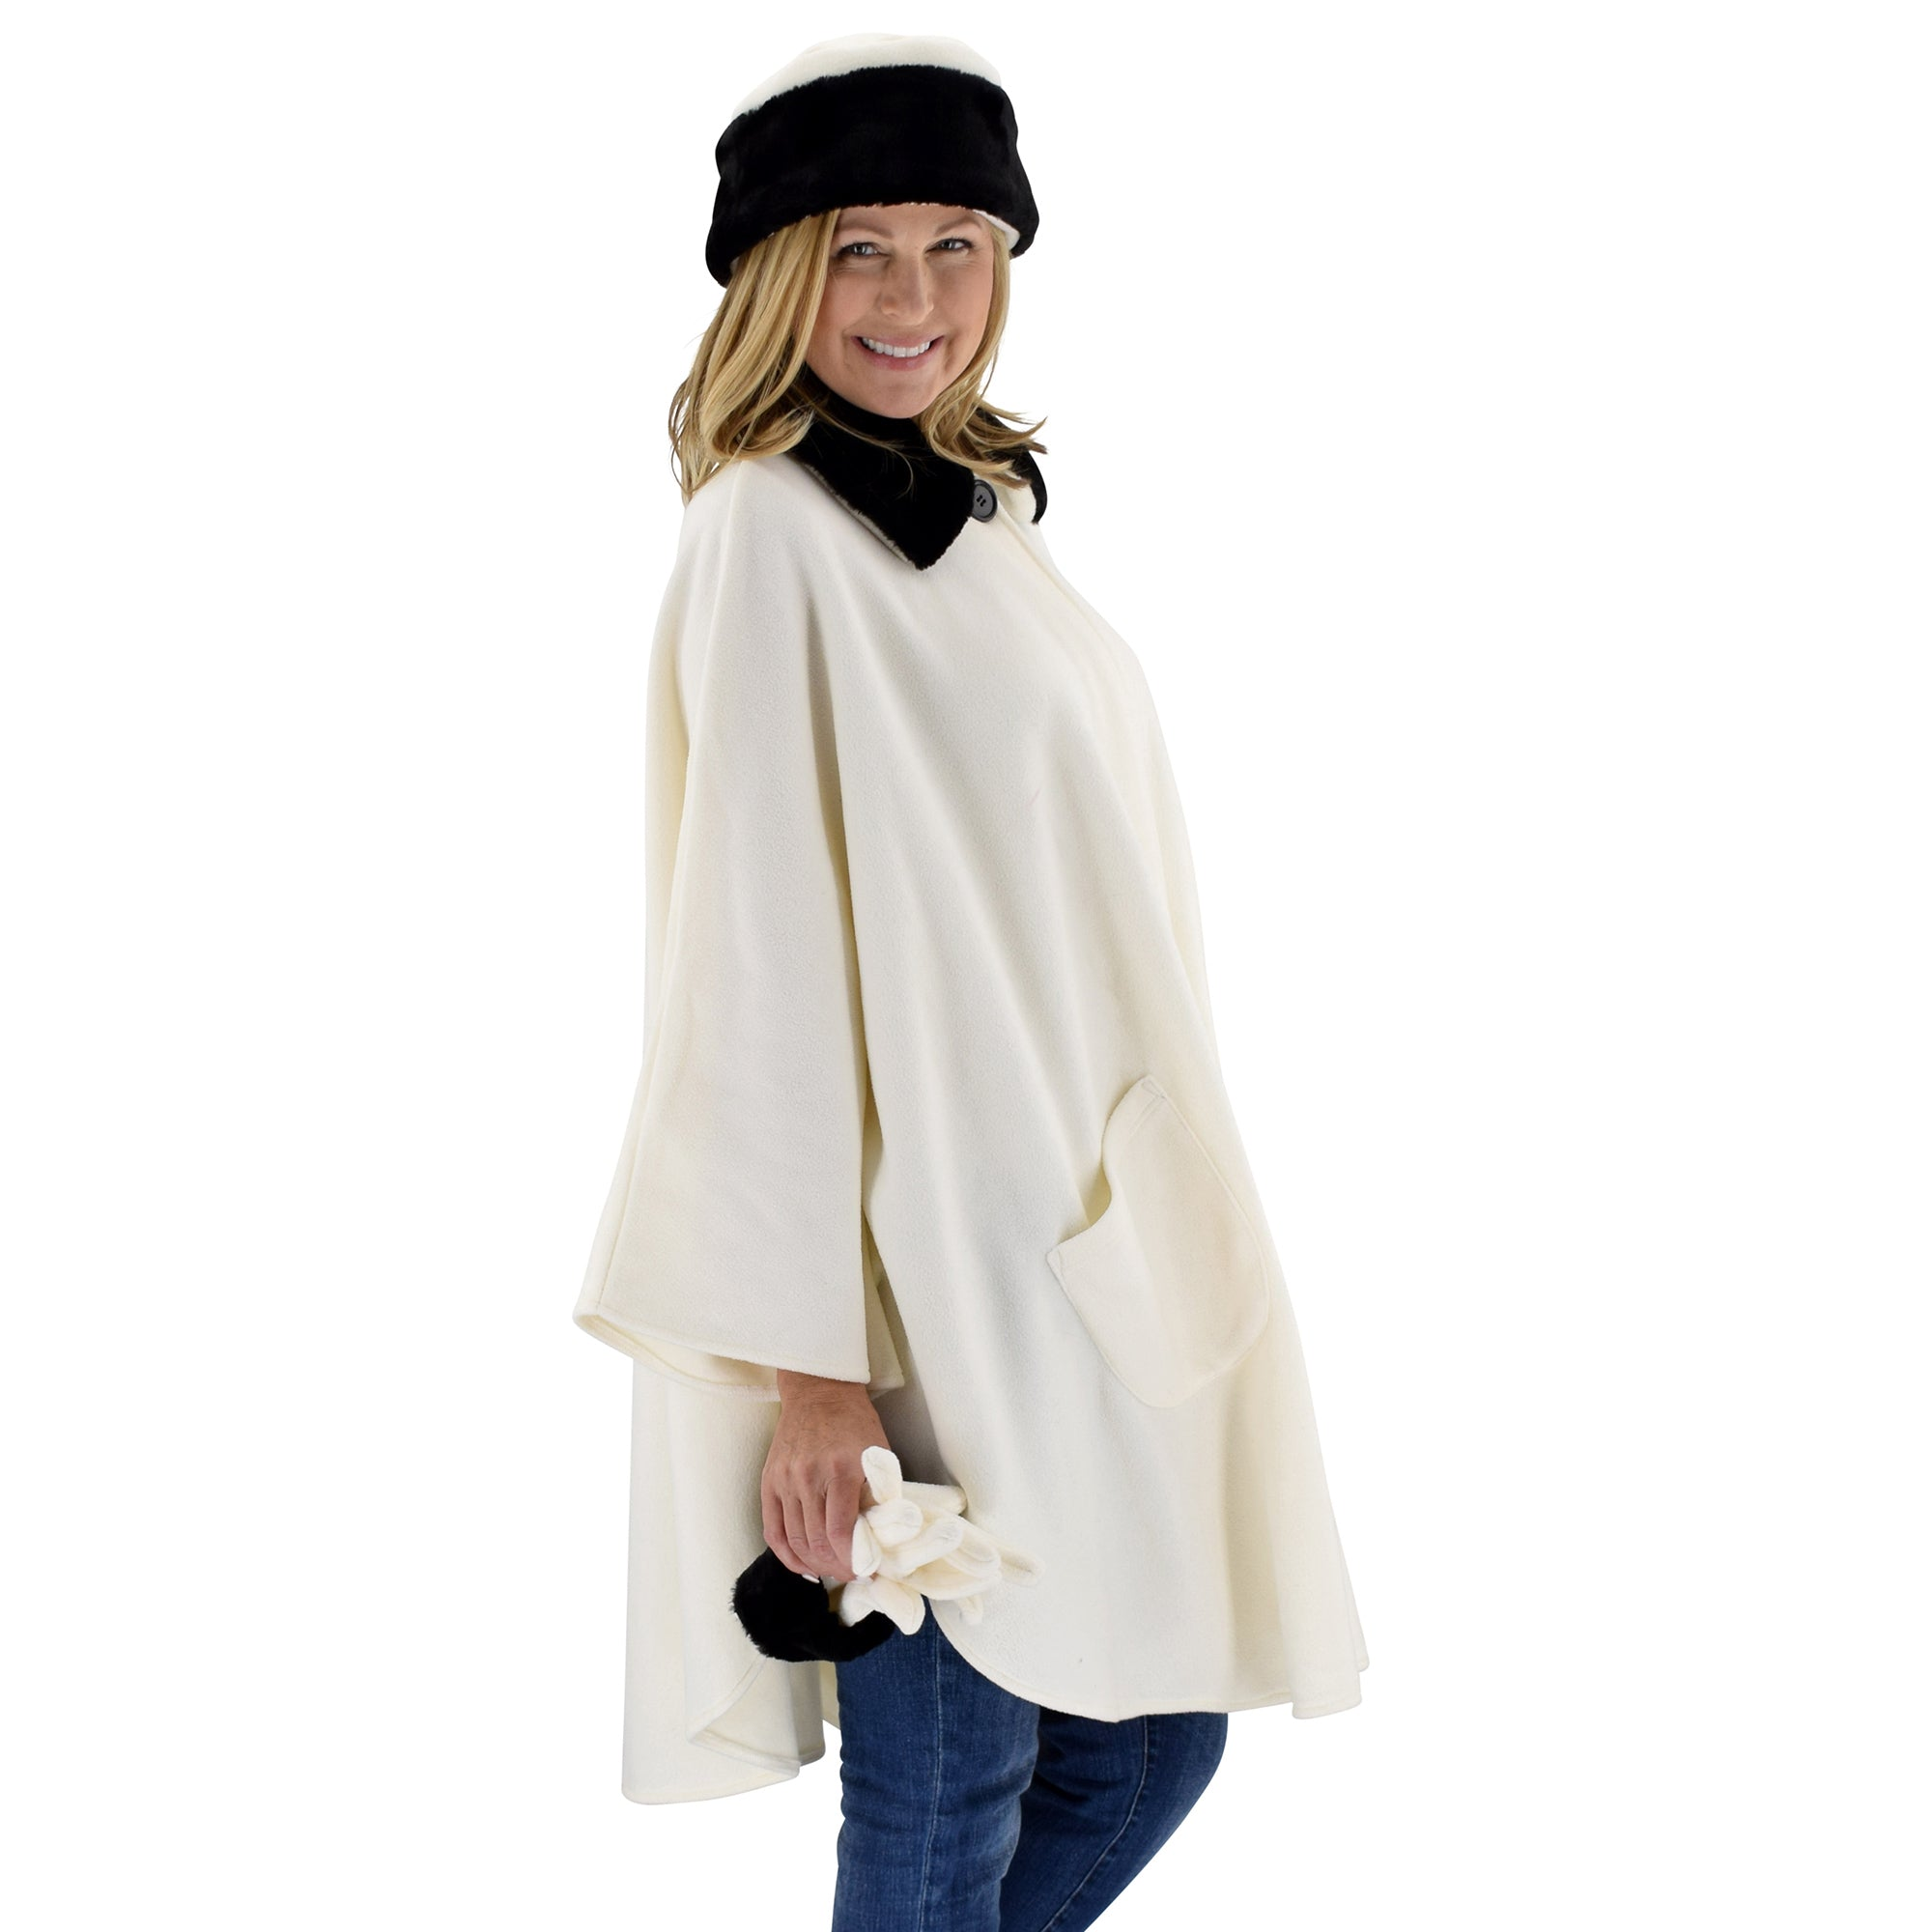 Le Moda Women's Black Fur Collar Polar Fleece Wrap with Matching Gloves and Hat-One Size Fits All at Linda Anderson. color_winter_white